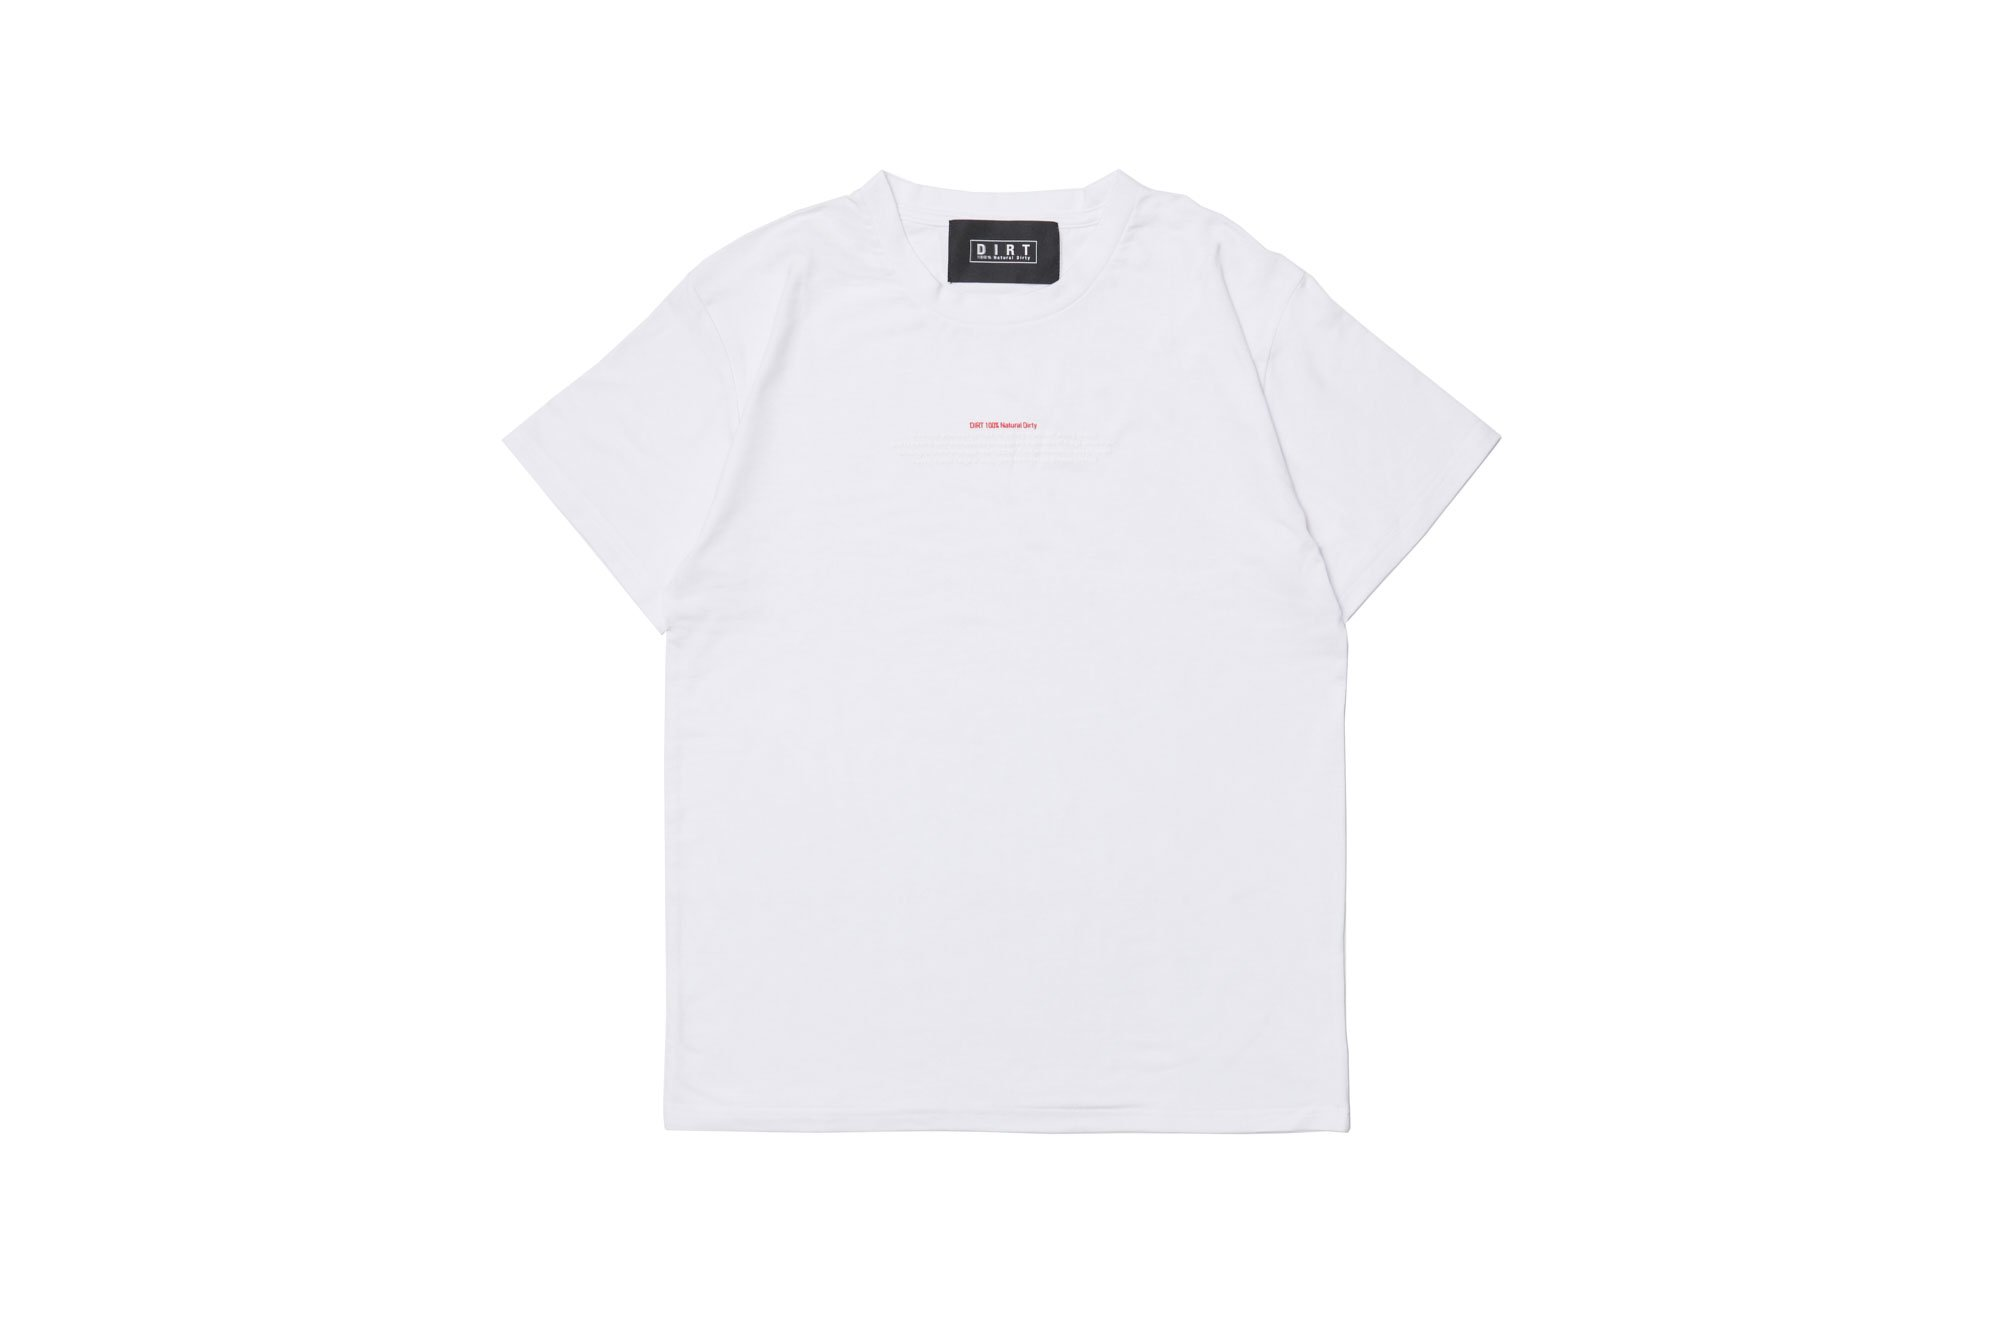 <img class='new_mark_img1' src='https://img.shop-pro.jp/img/new/icons14.gif' style='border:none;display:inline;margin:0px;padding:0px;width:auto;' />2020AW collection T-shirt WH